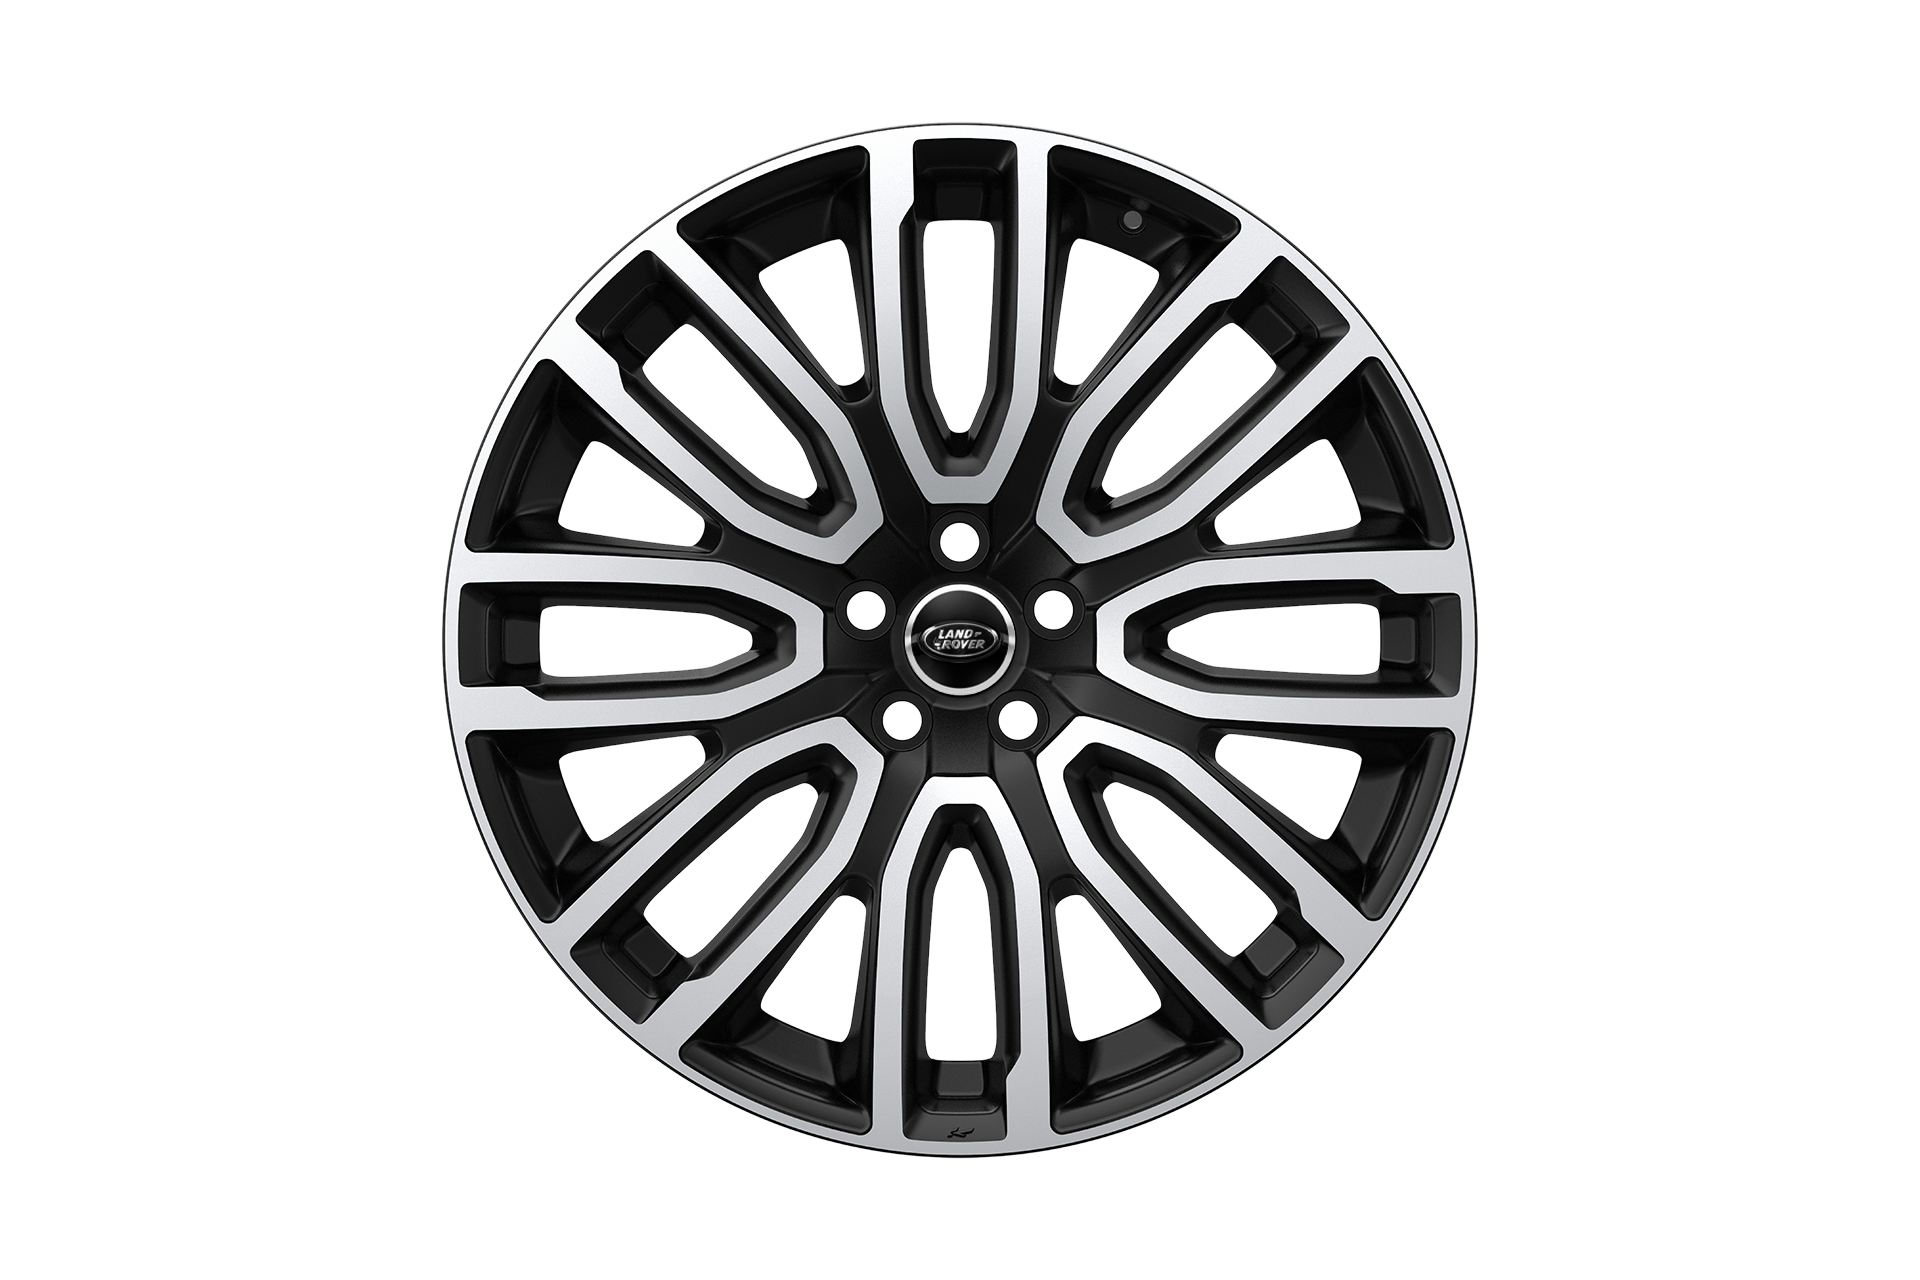 Land Rover Discovery (2017-Present) Pace Car Light Alloy Wheels by Kahn - Image 3605